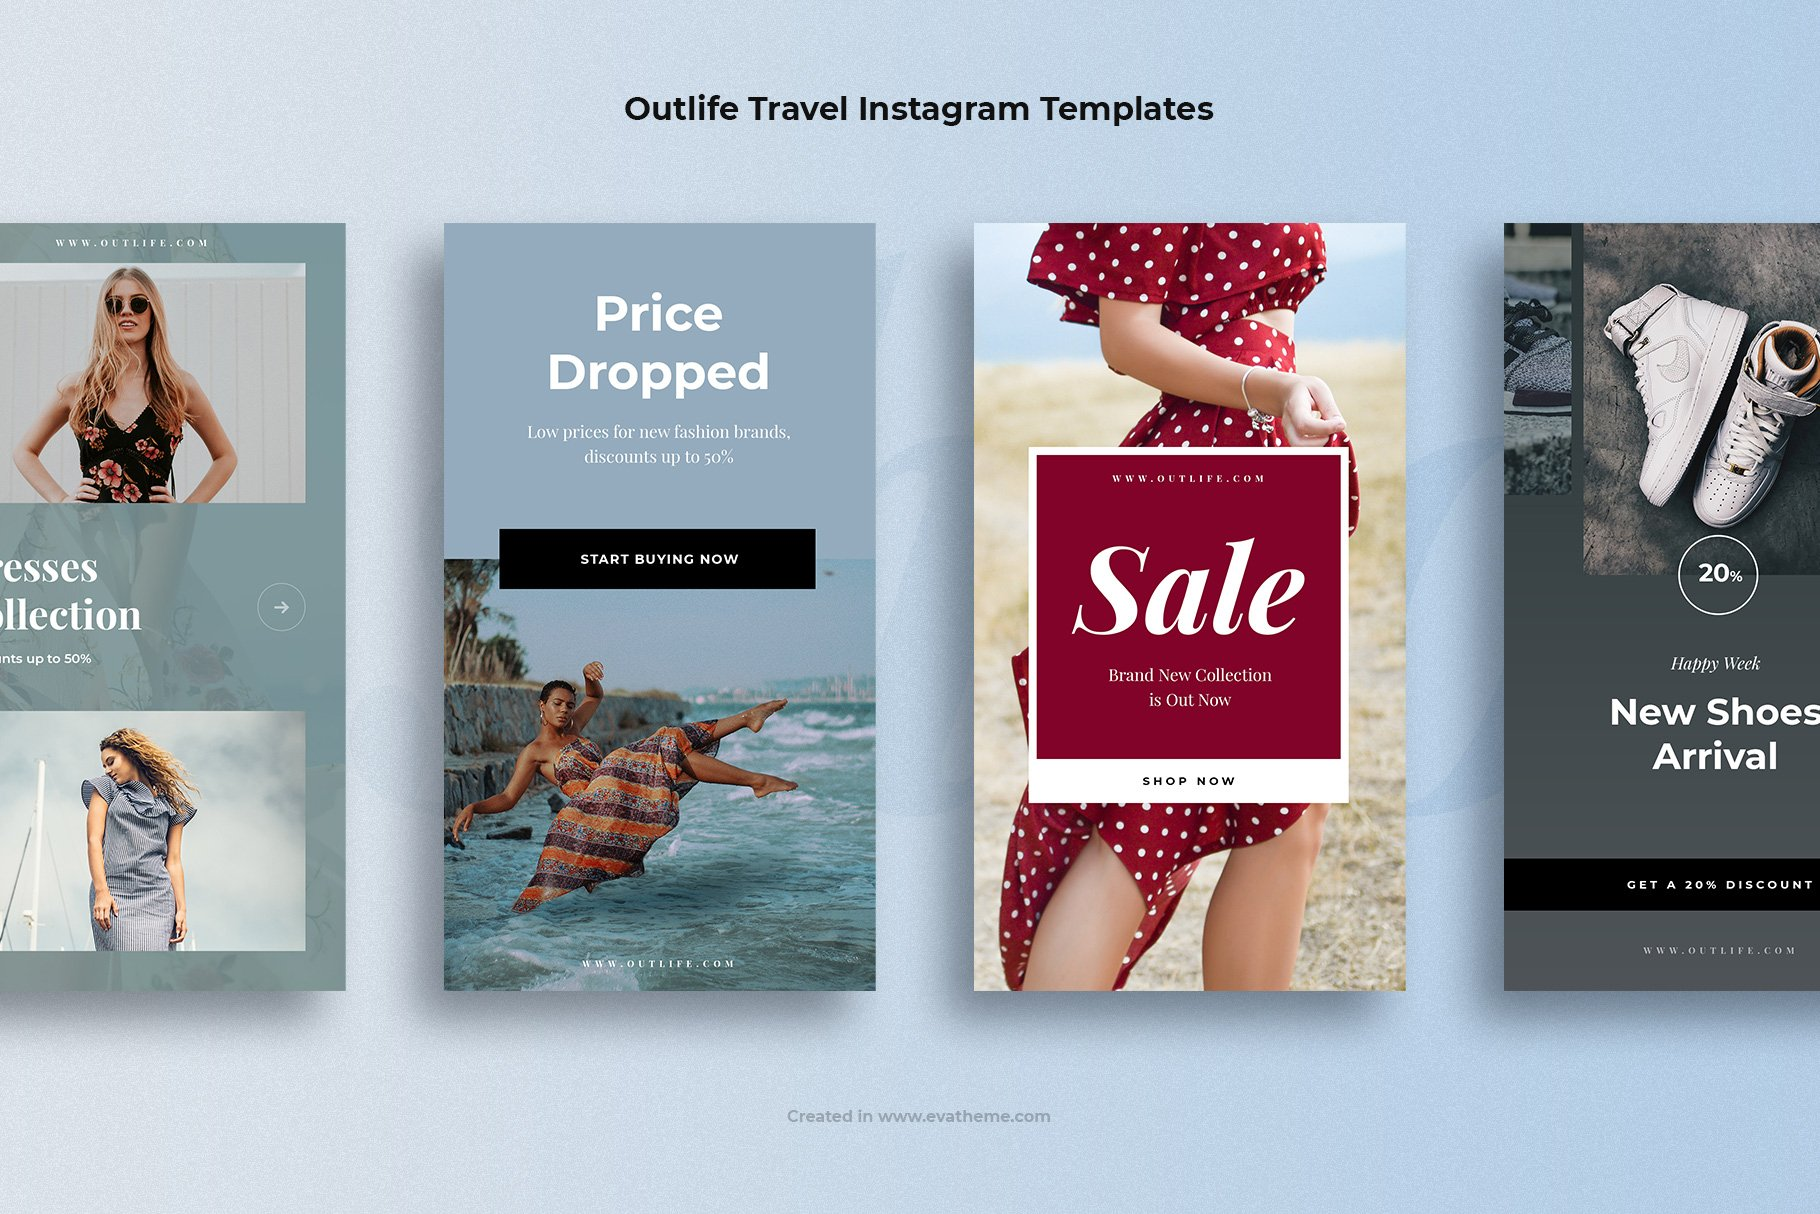 Outlife Fashion Instagram Templates example image 2